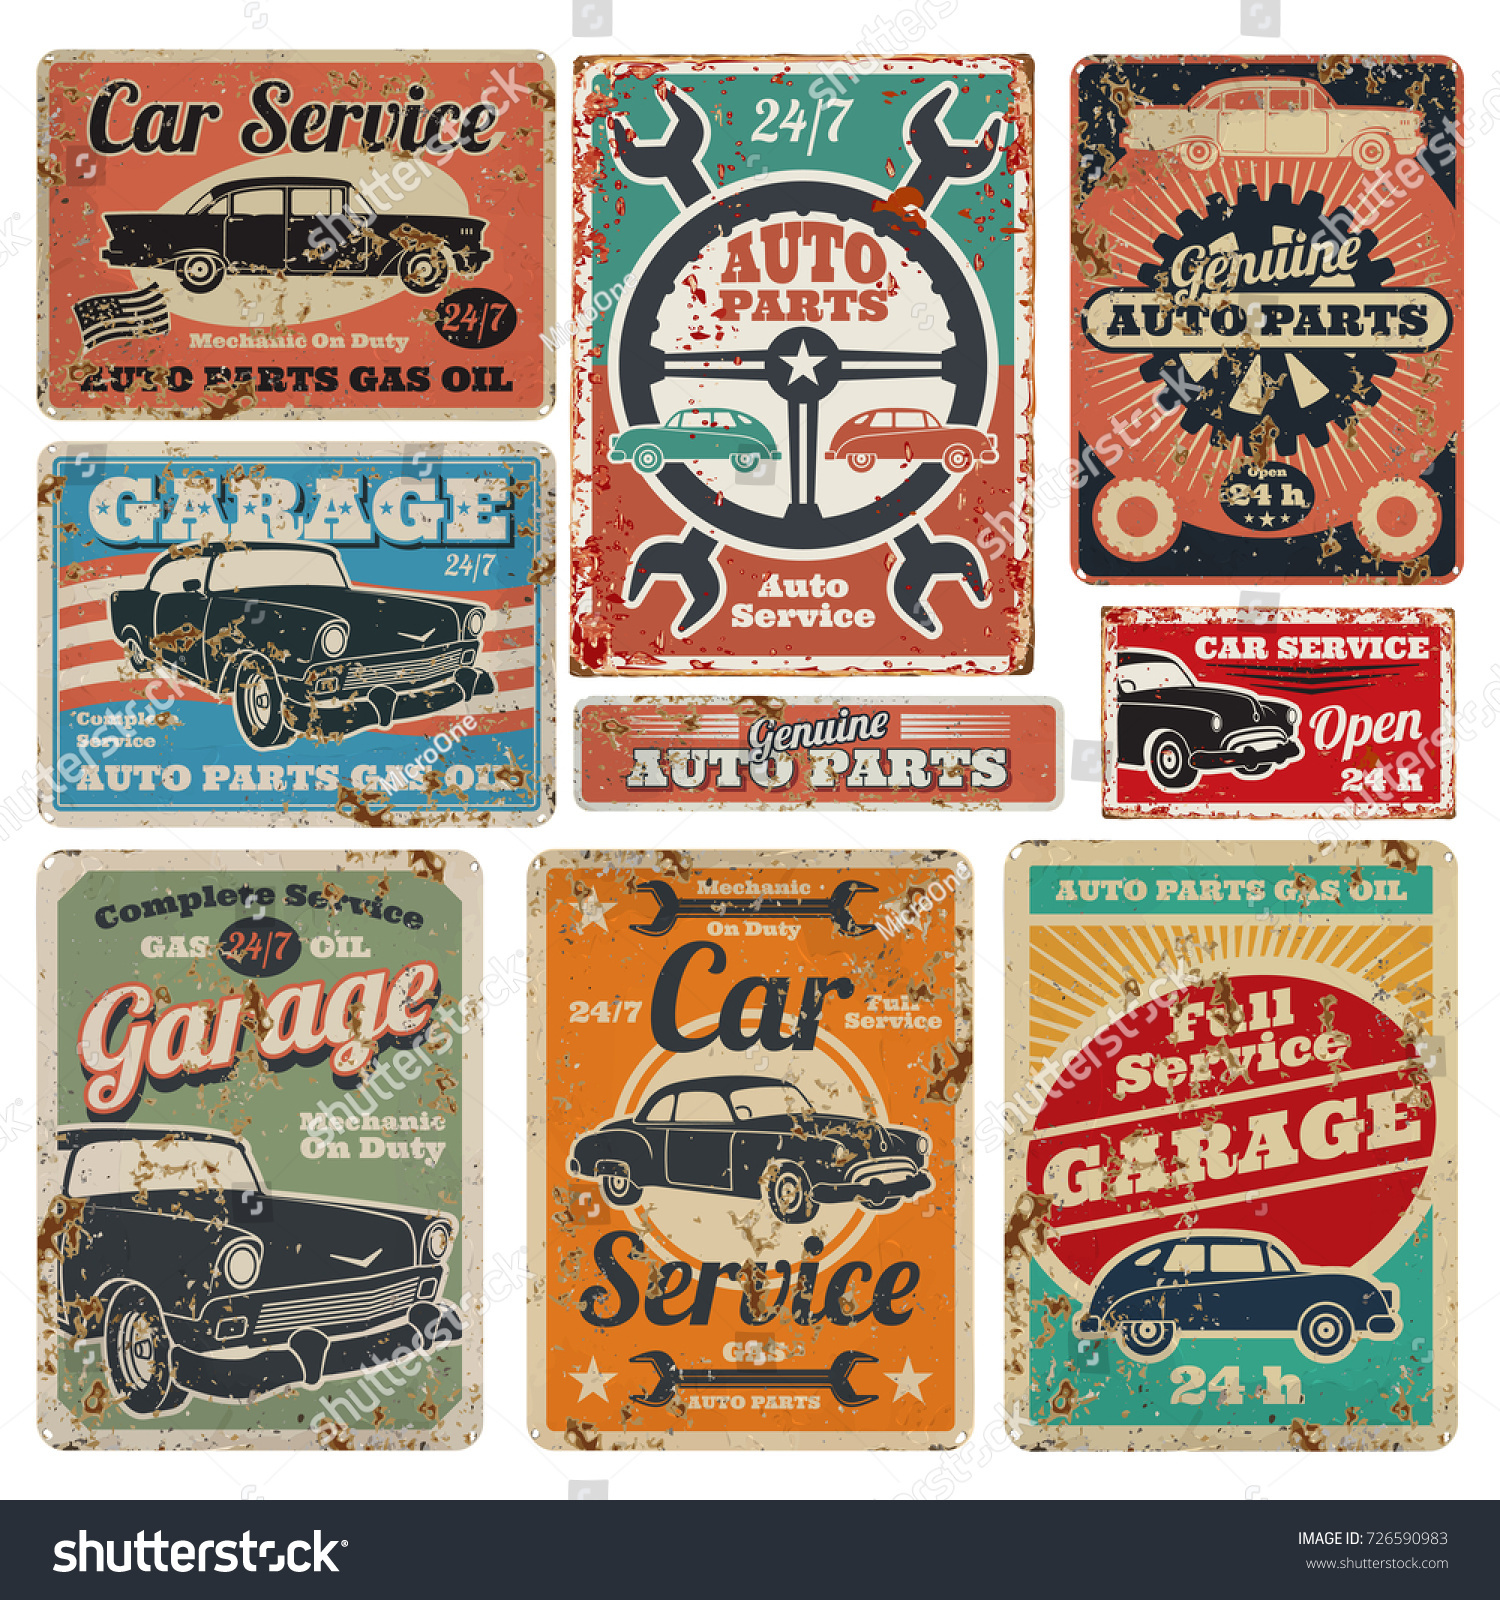 Vintage road vehicle repair service garage stock vector for Garage auto discount montpellier